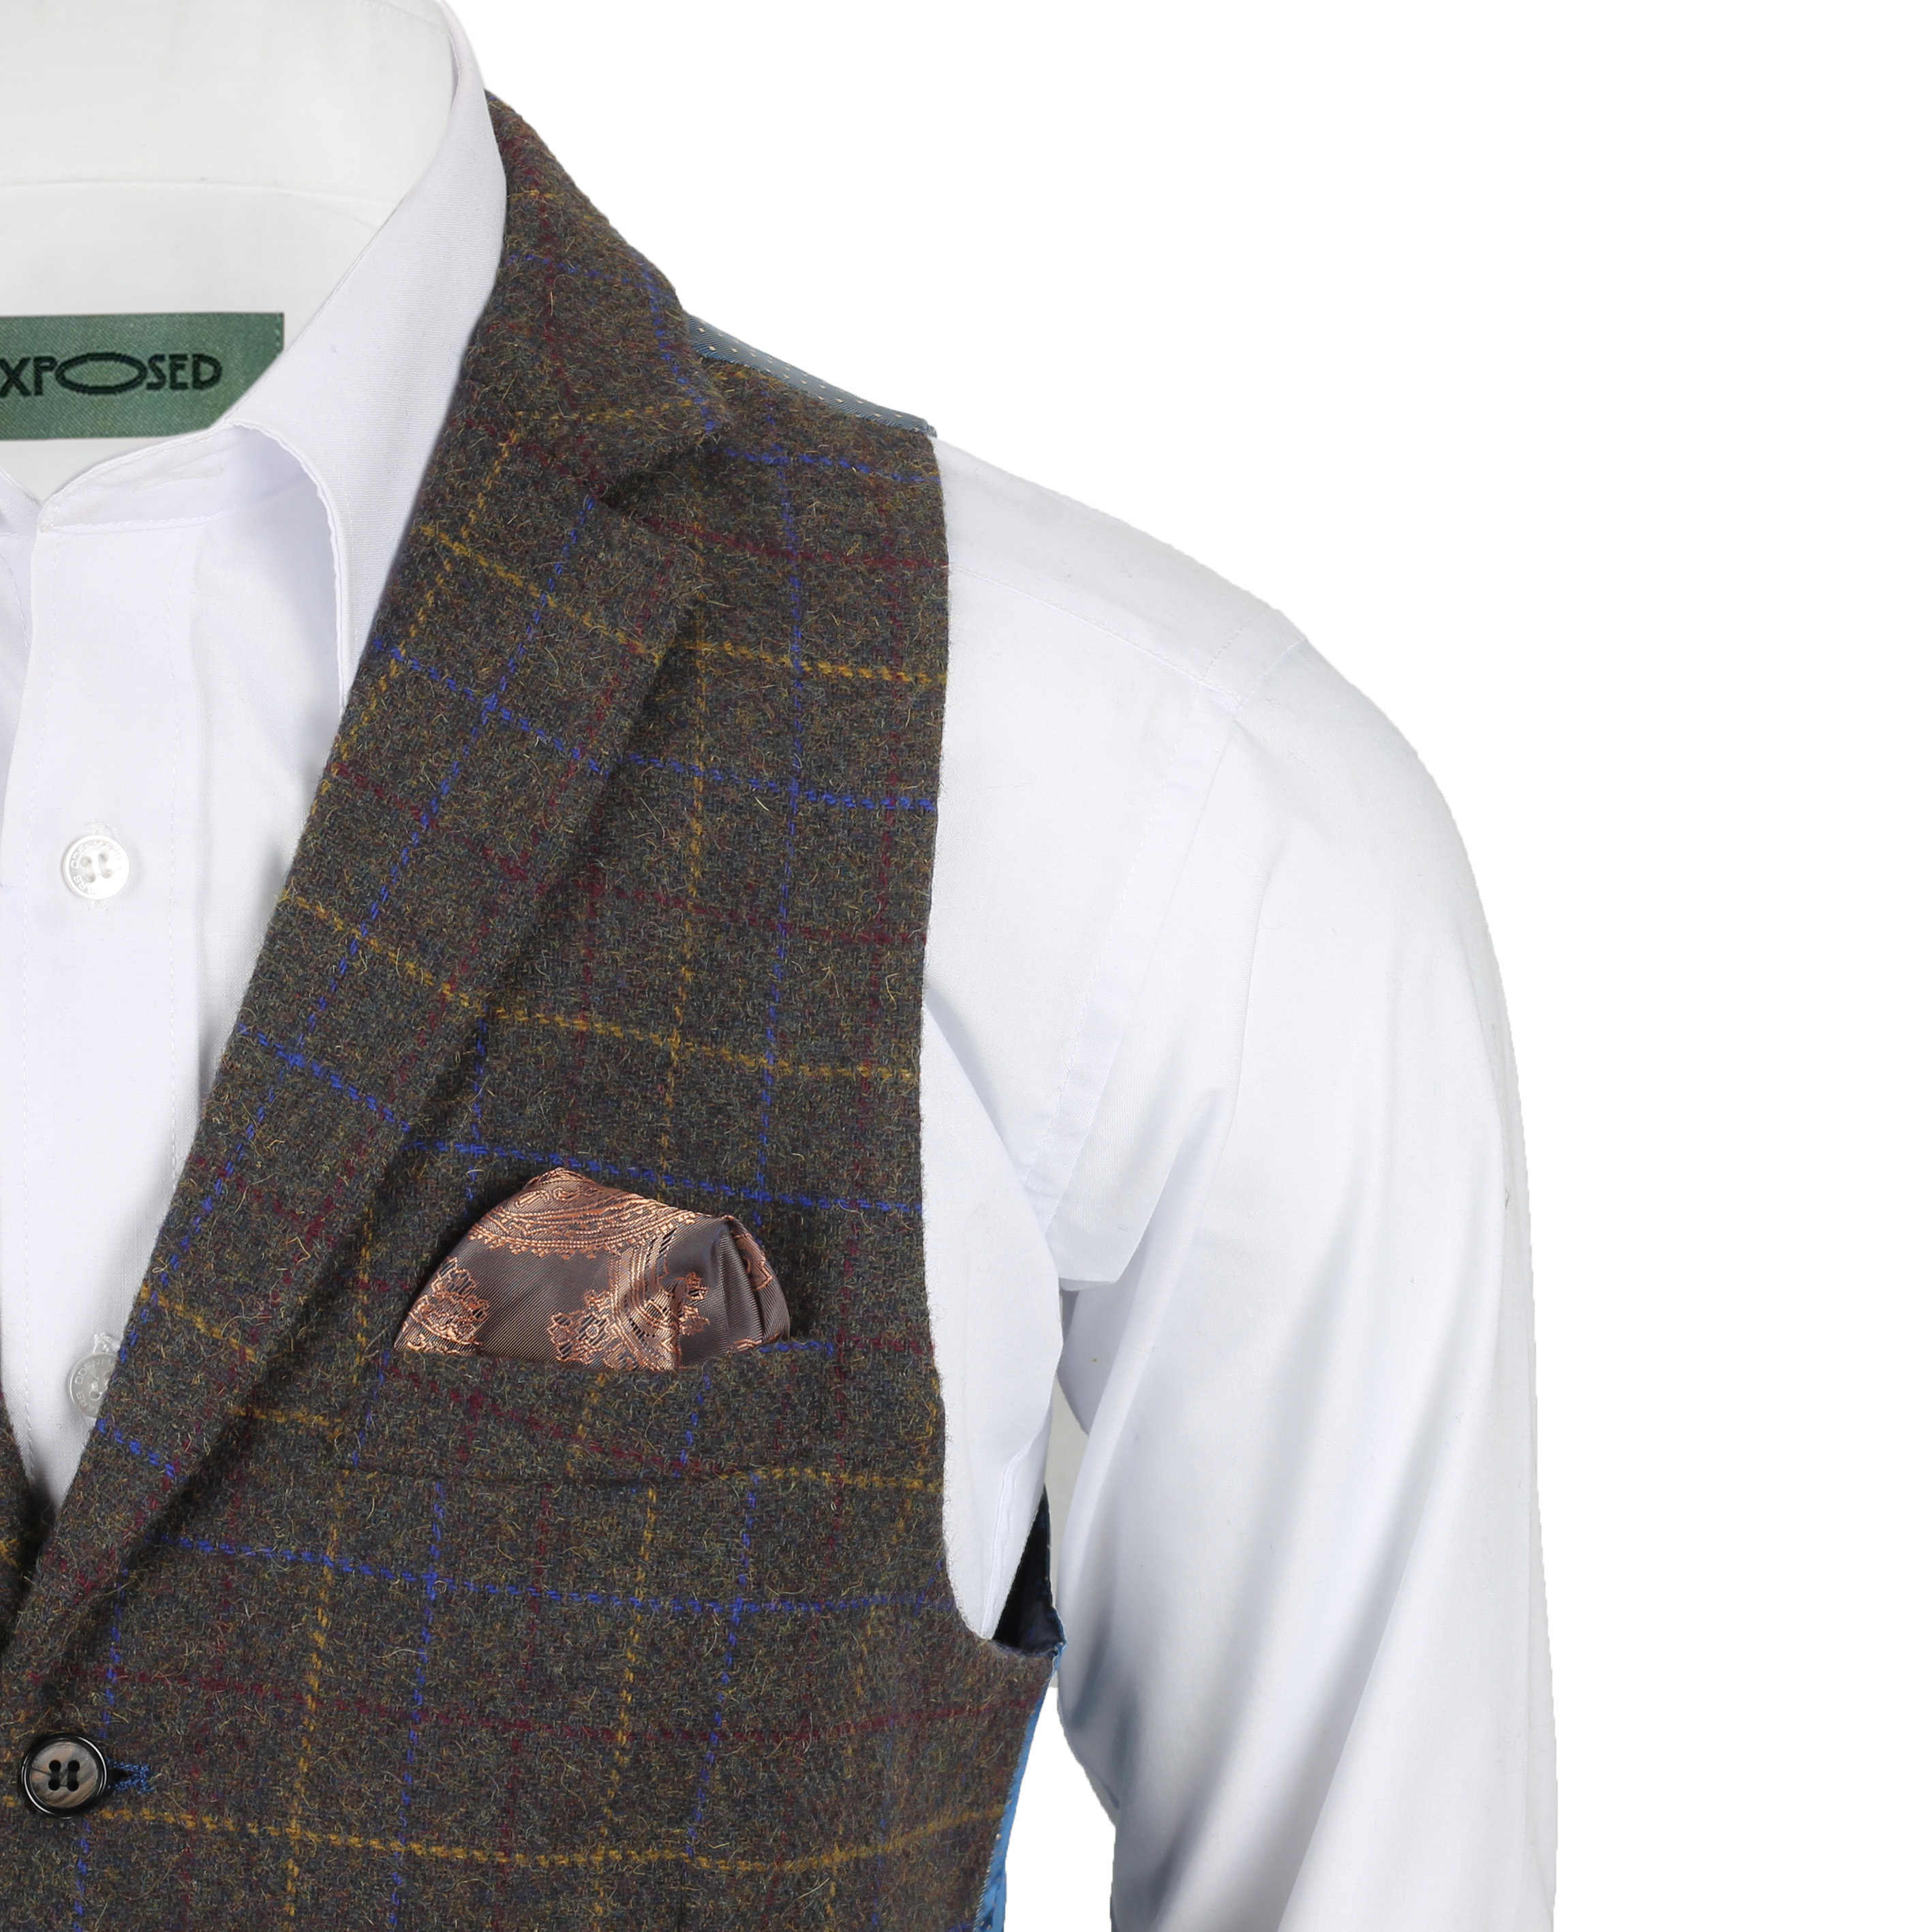 Mens-Tweed-Check-Waistcoat-Vintage-Herringbone-VelvetCollar-Lapel-Slim-Fit-Vest thumbnail 4